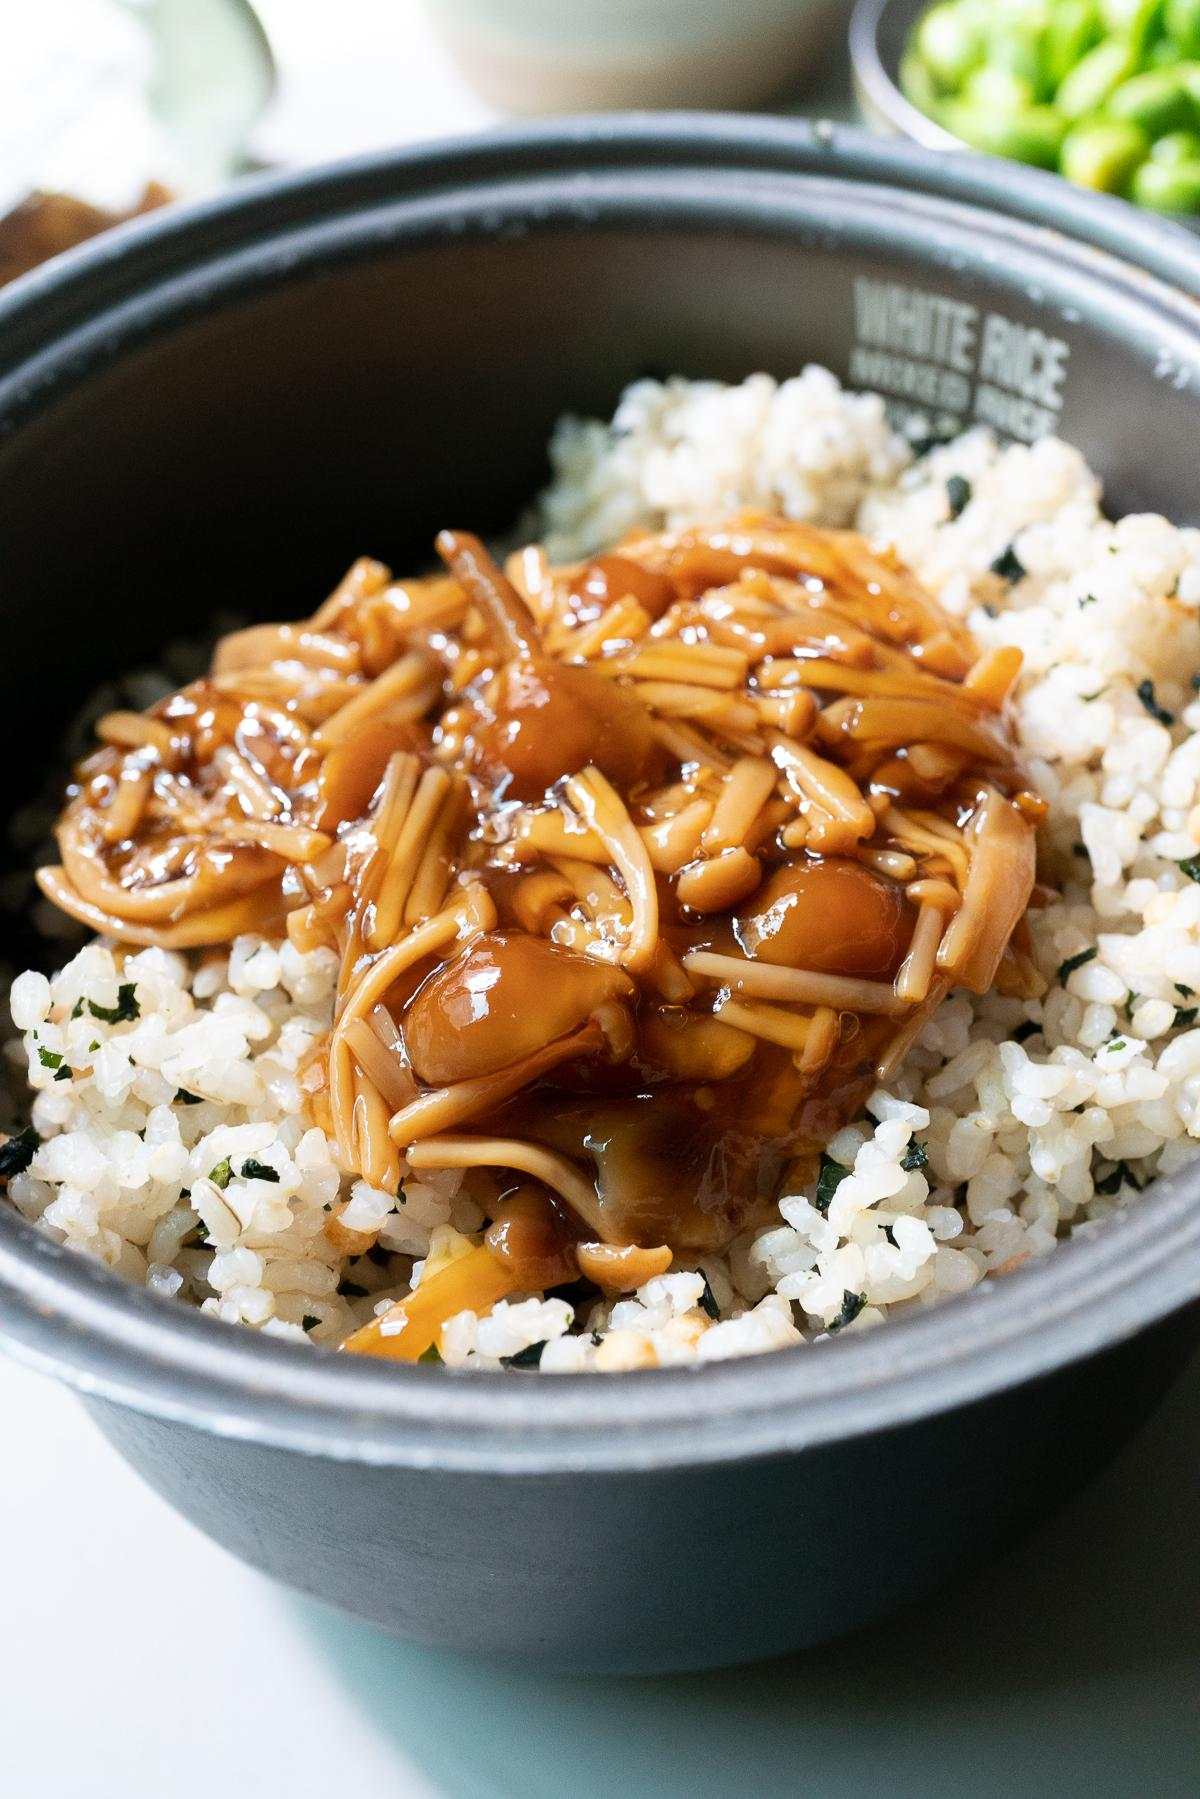 Pouring the Nametake (seasoned mushrooms) over cooked rice